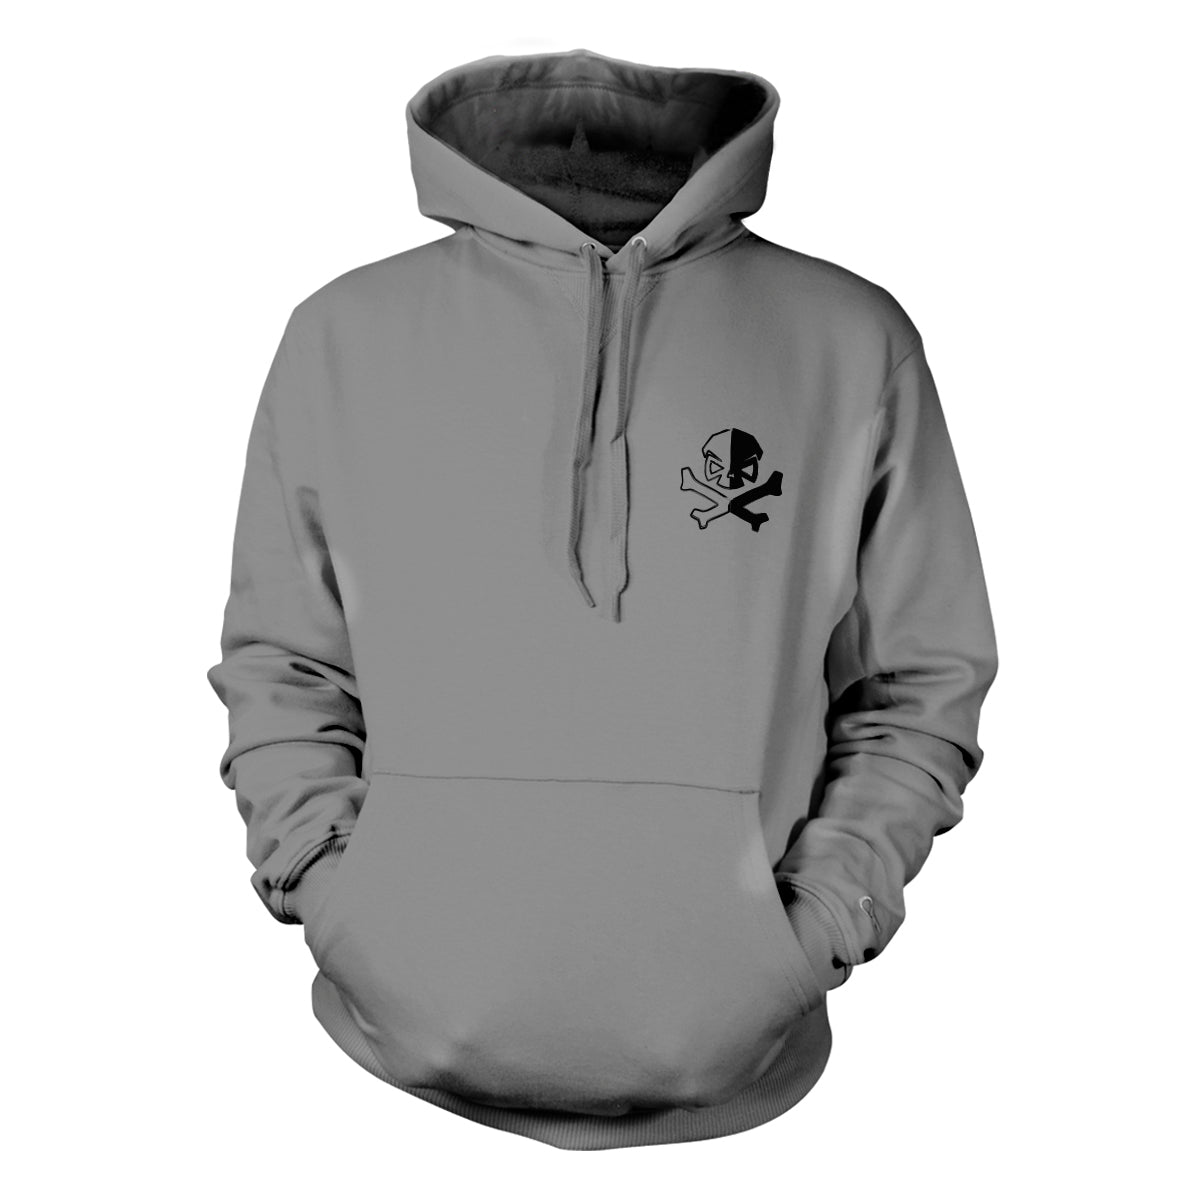 You Can't Train Too Much Hoodie -  - Hoodies - Pipe Hitters Union